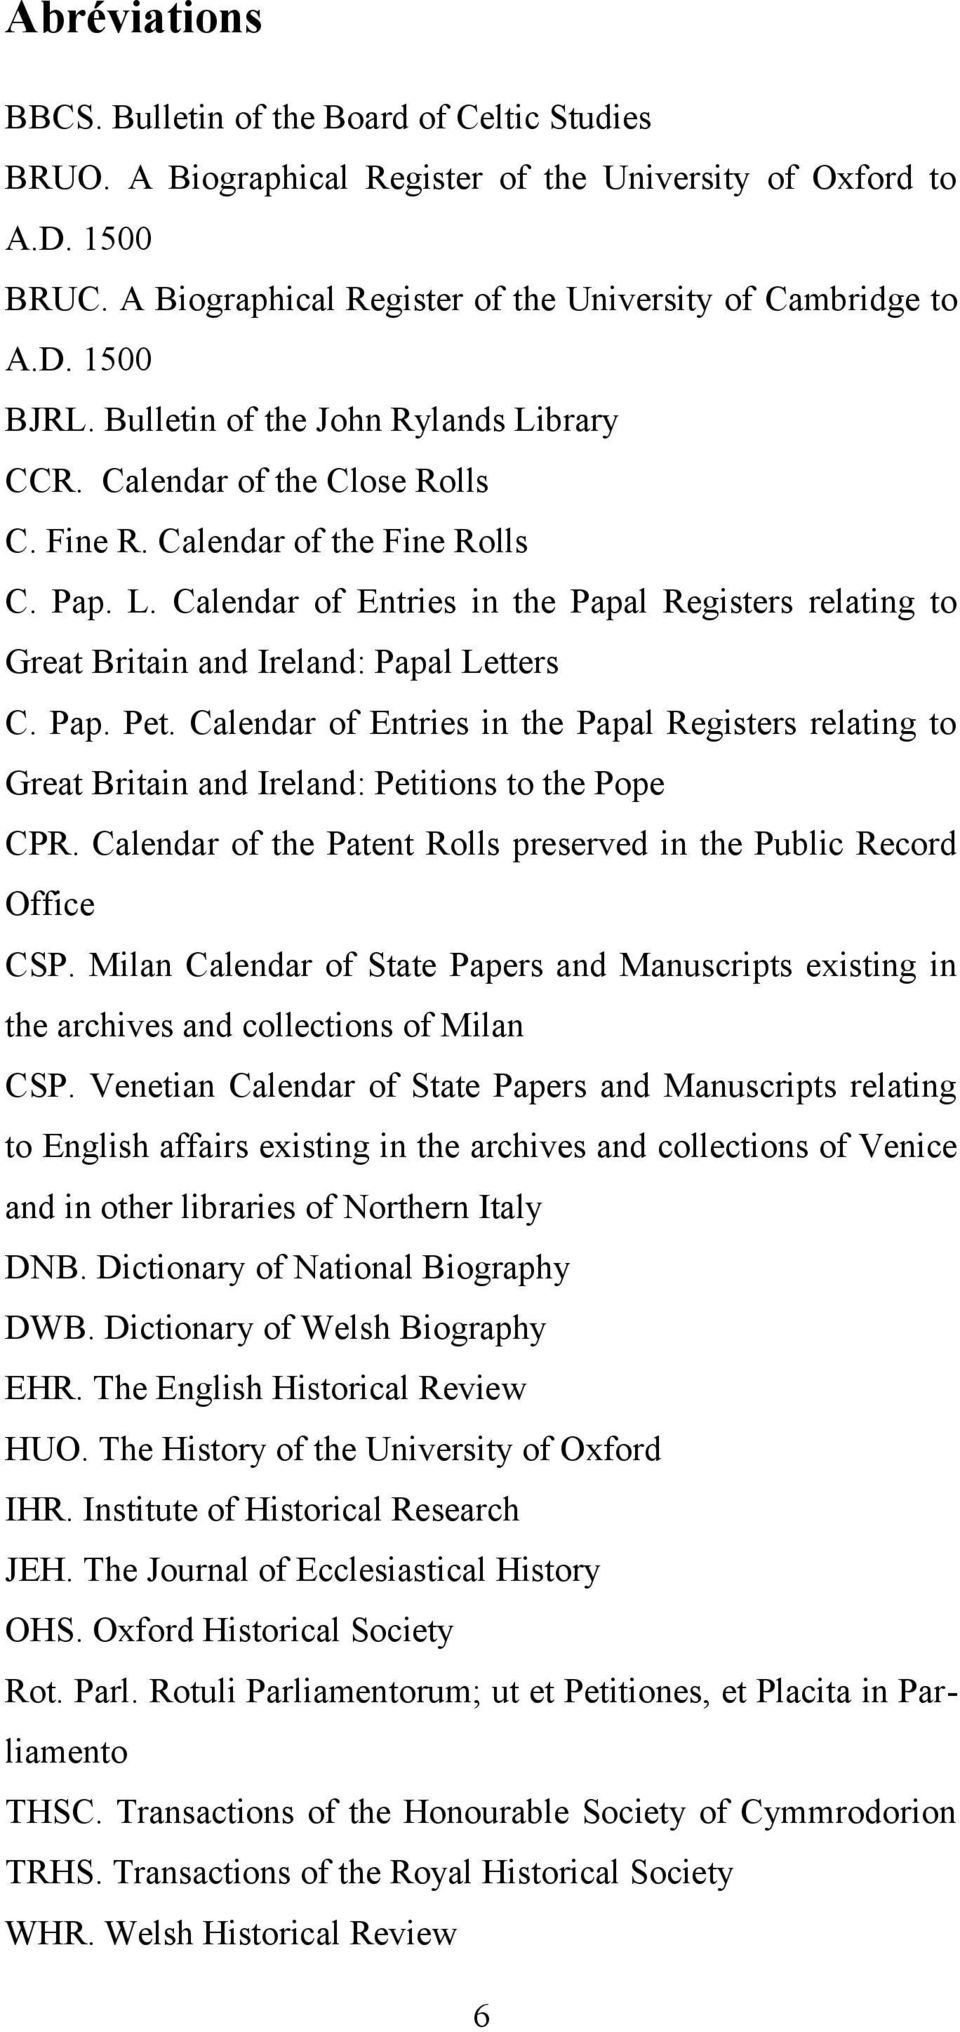 Pap. Pet. Calendar of Entries in the Papal Registers relating to Great Britain and Ireland: Petitions to the Pope CPR. Calendar of the Patent Rolls preserved in the Public Record Office CSP.